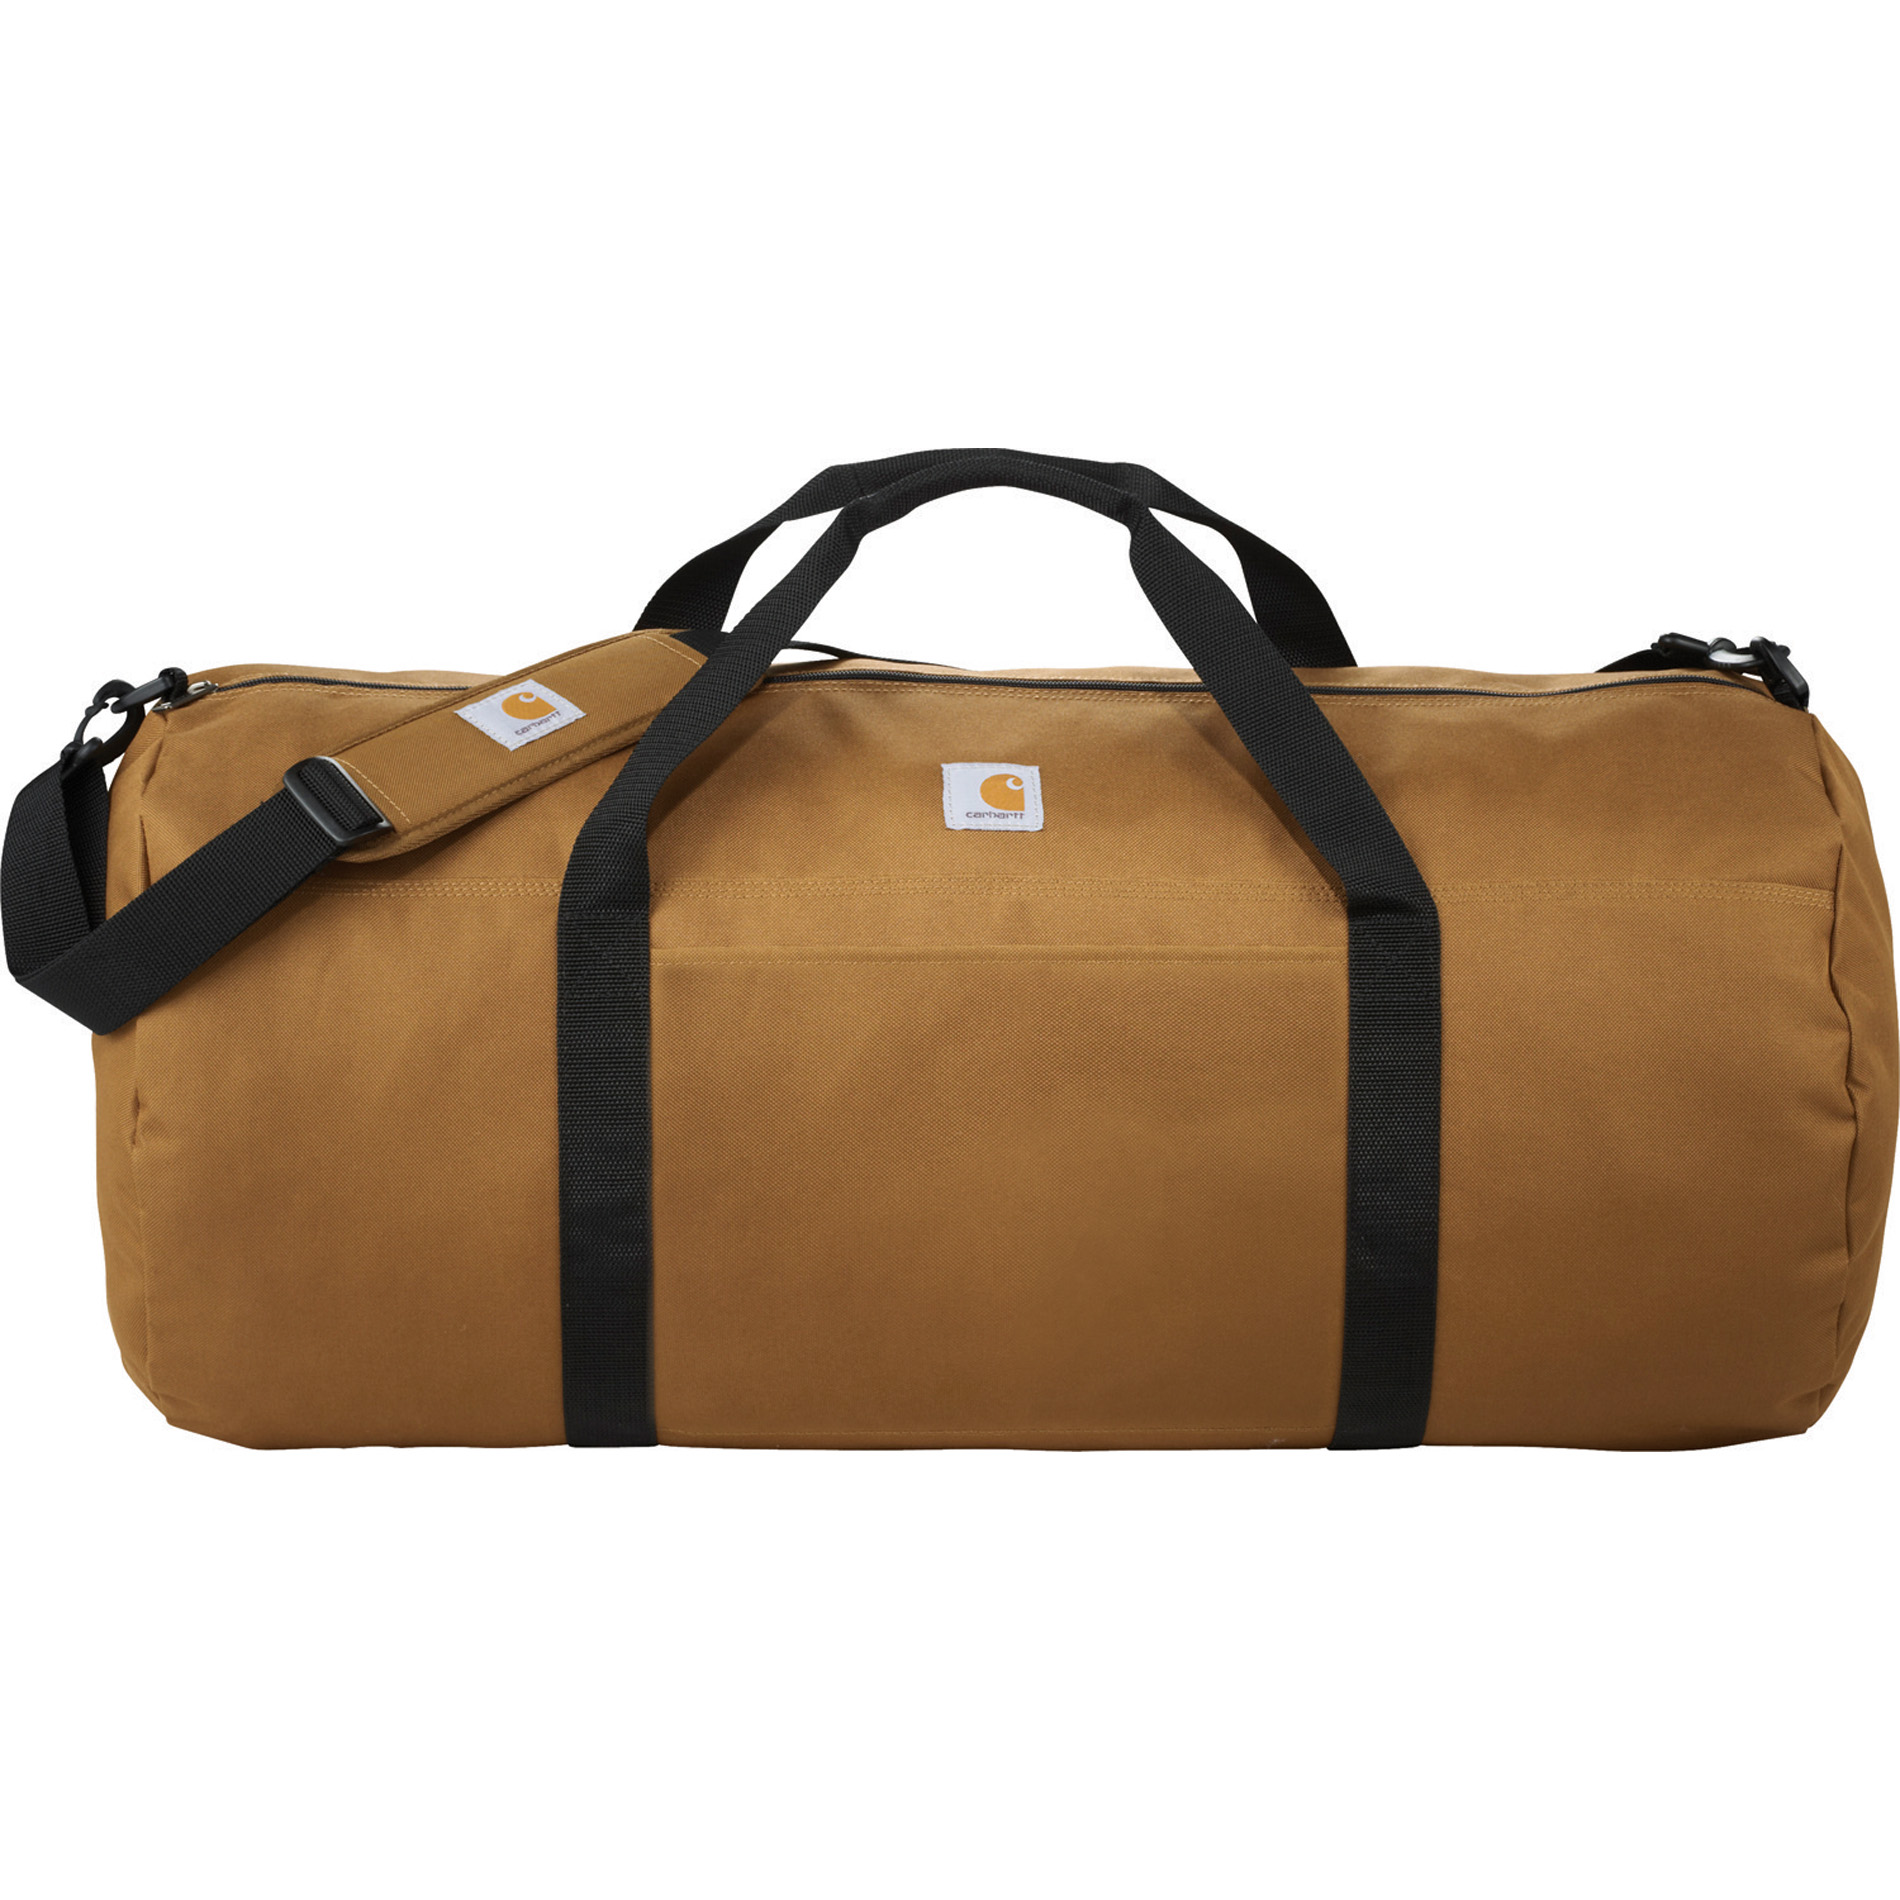 Carhartt 1889-25 - Foundations 28 Packable Duffel w/...